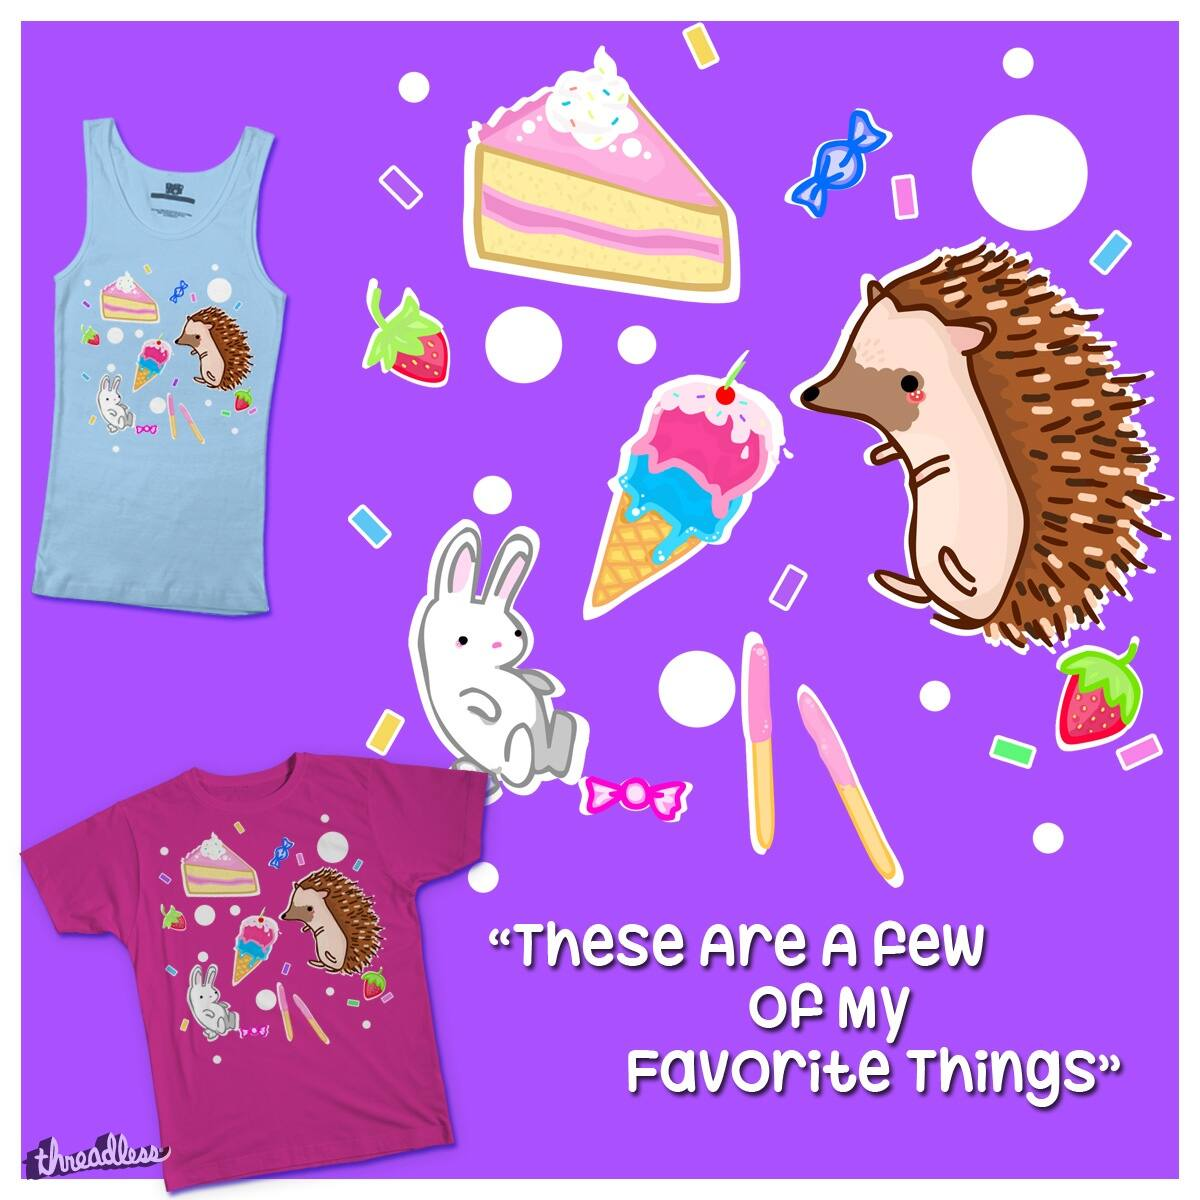 These Are A Few Of My Favorite Things by Littlebearsyd on Threadless